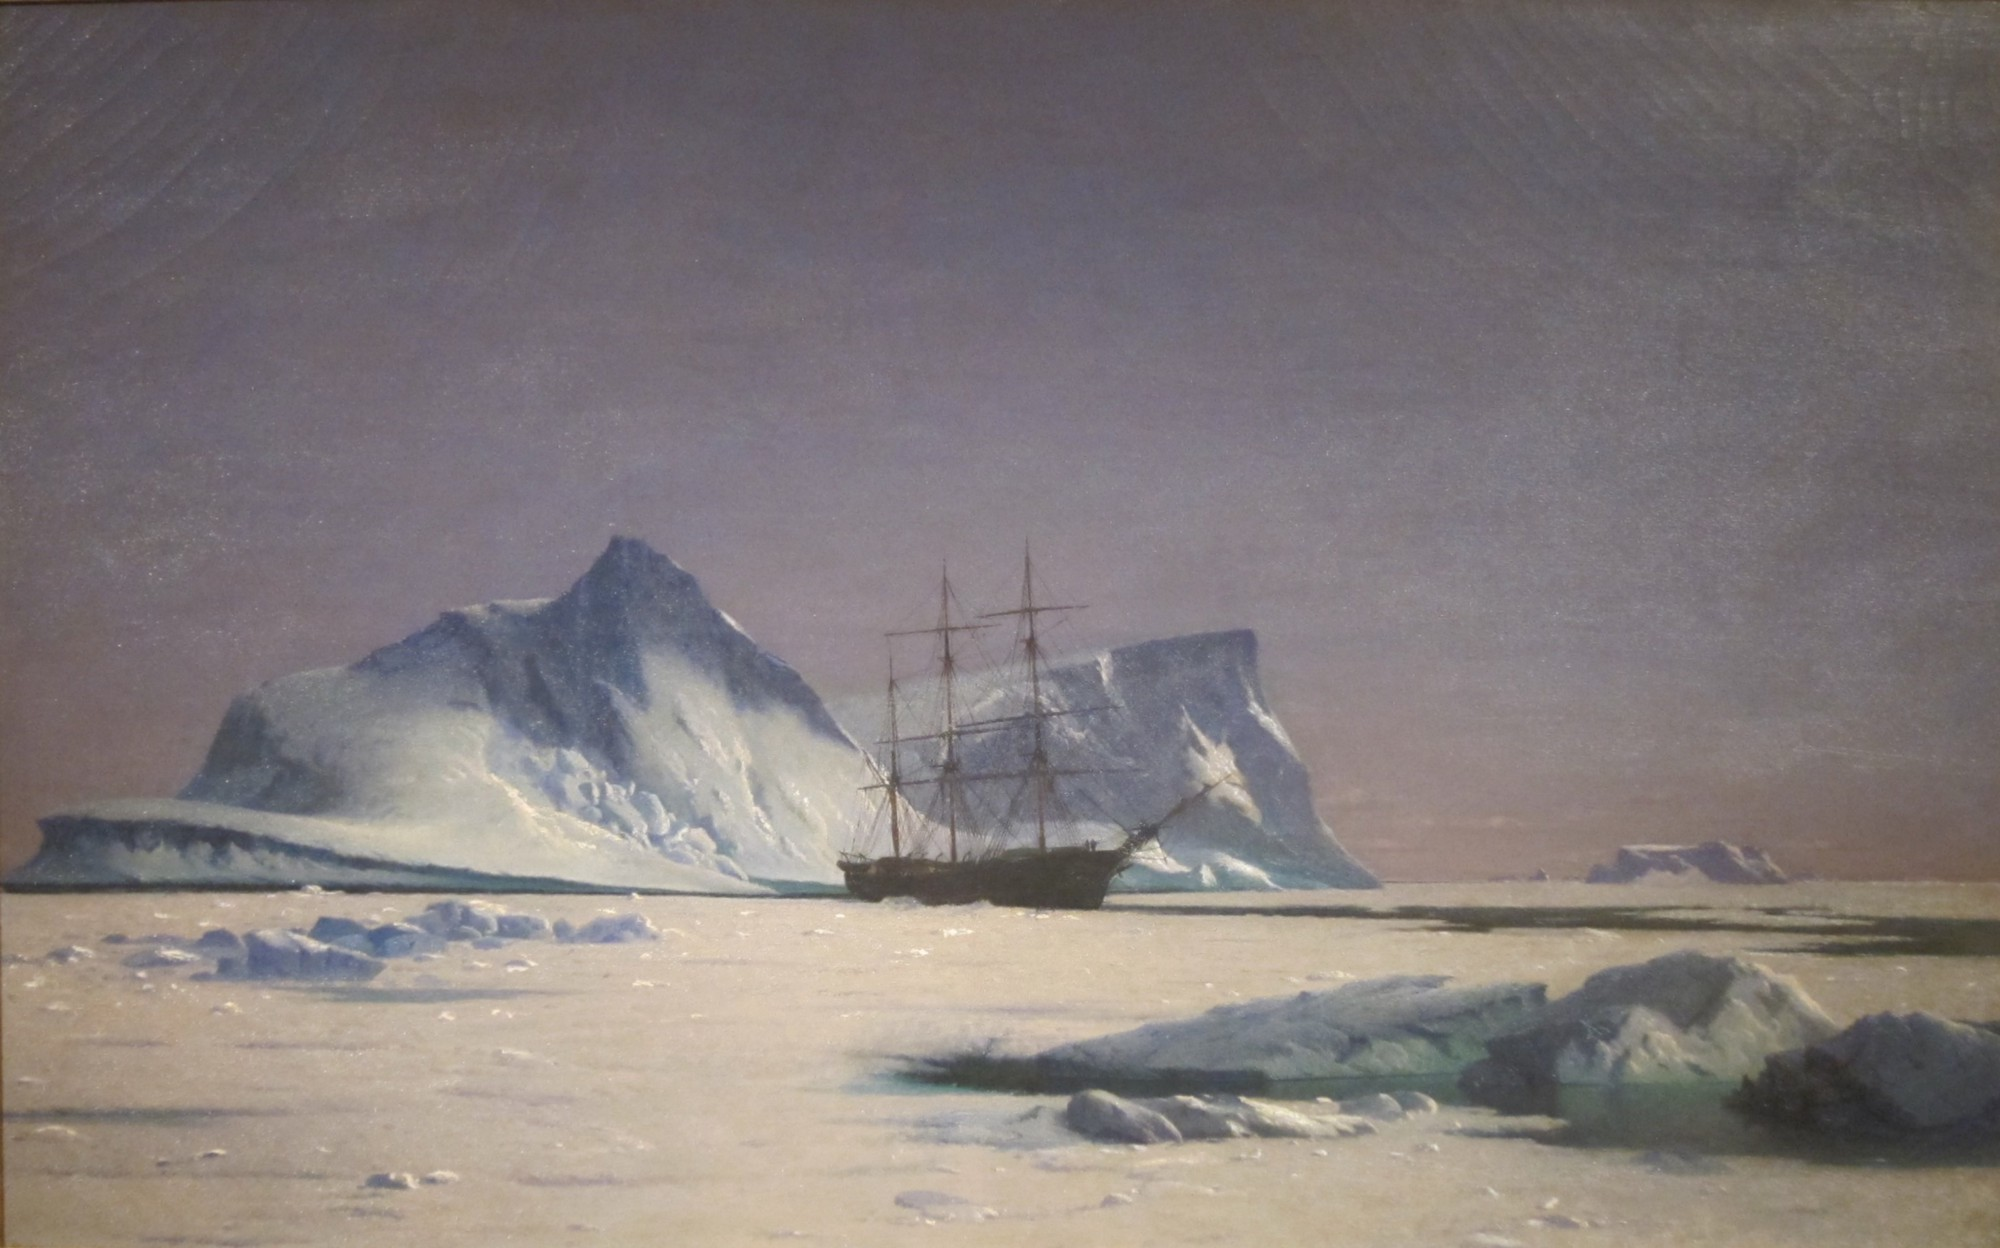 """""""Scene in the Arctic"""" by William Bradford (1823—1892). Bradford was an American artist and explorer from Fairhaven, Massachusetts and one the country's most preeminent painters of Arctic seascapes and ships. (Image: William Bradford, circa 1880, De Young Museum, The Fine Arts Museum of San Francisco, CC0 1.0 Universal Public Domain Dedication.)"""